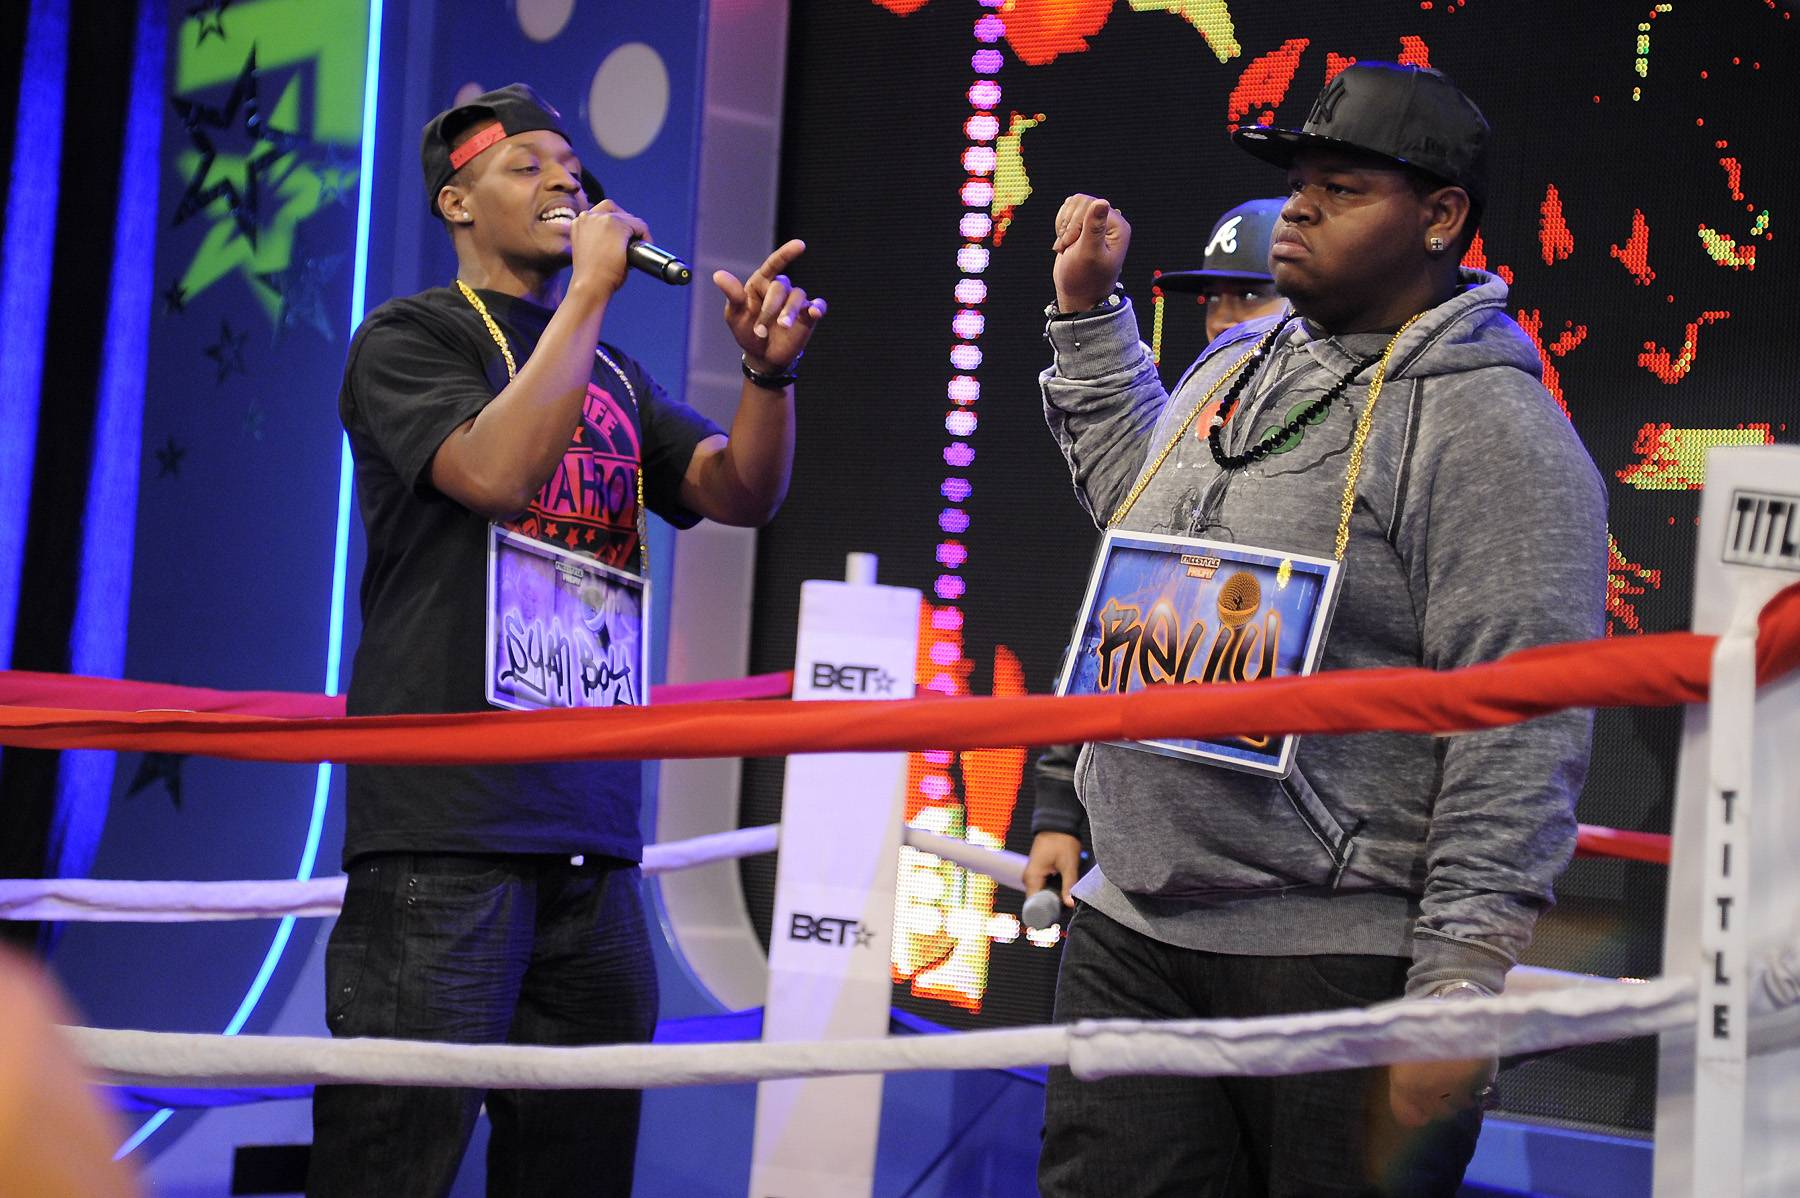 Spitting Fire - Freestyle Friday contestants Syahboy and Relly at 106 & Park, April 6, 2012. (photo: John Ricard / BET)